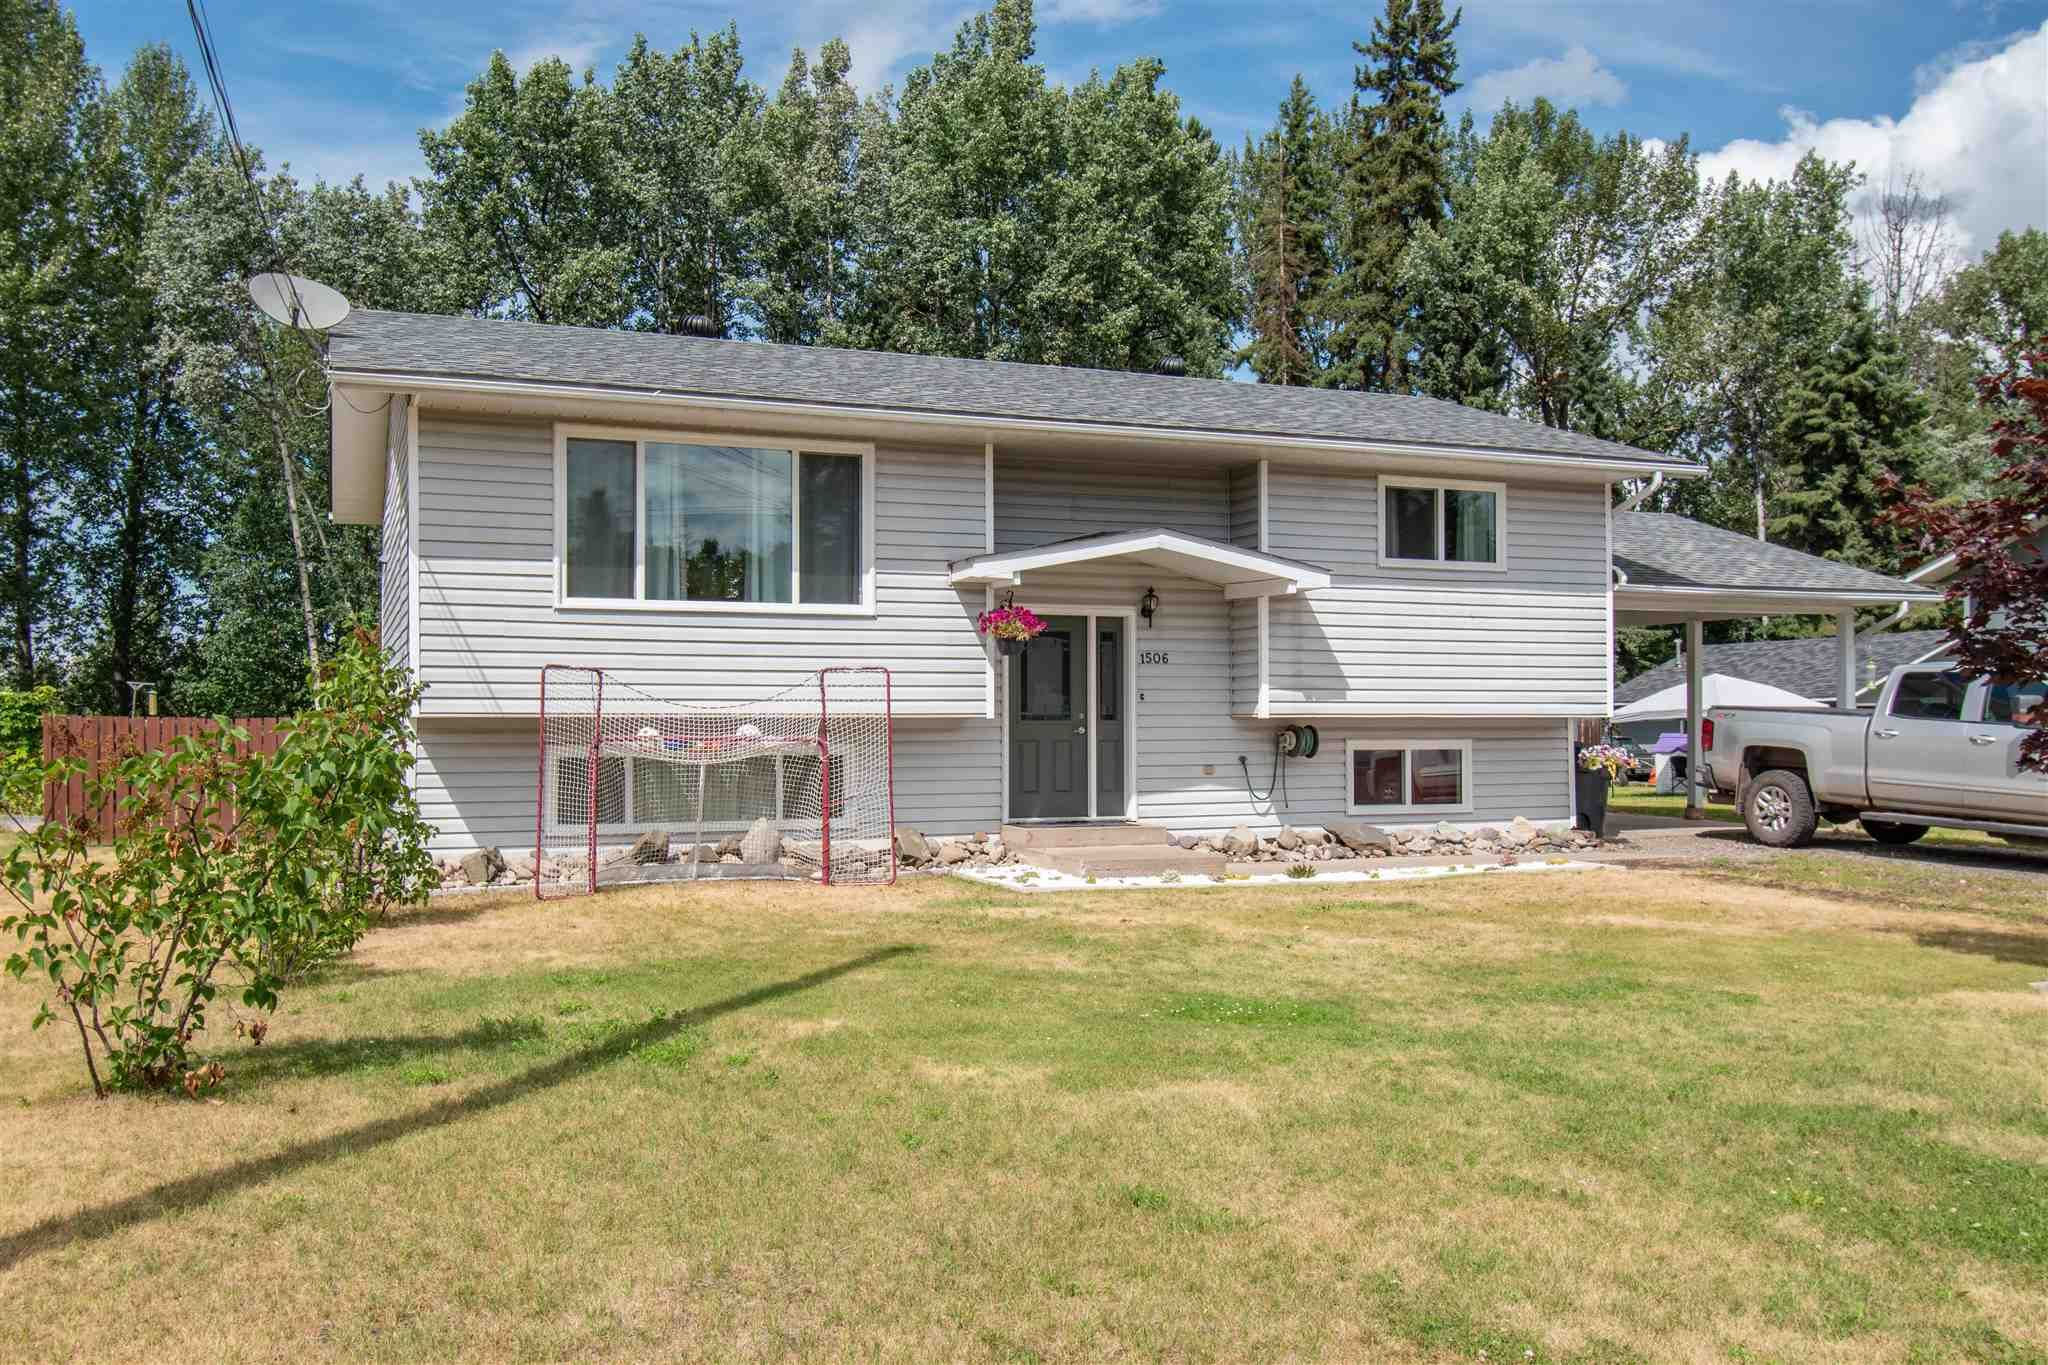 Main Photo: 1506 WALNUT Street: Telkwa House for sale (Smithers And Area (Zone 54))  : MLS®# R2602718